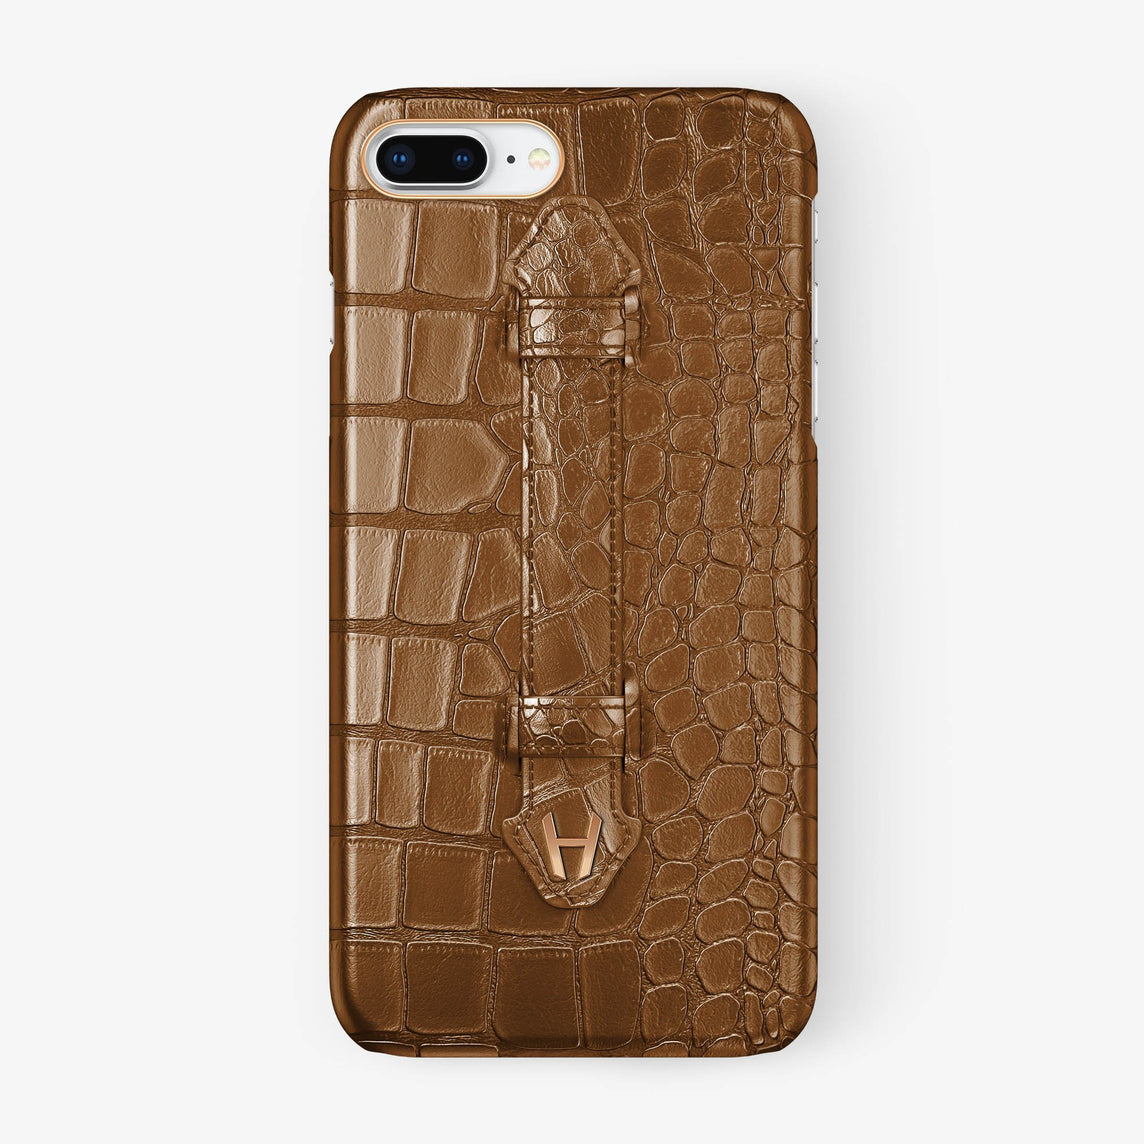 Cognac Alligator iPhone Finger Case for iPhone 7/8 Plus finishing rose gold - Hadoro Luxury Cases